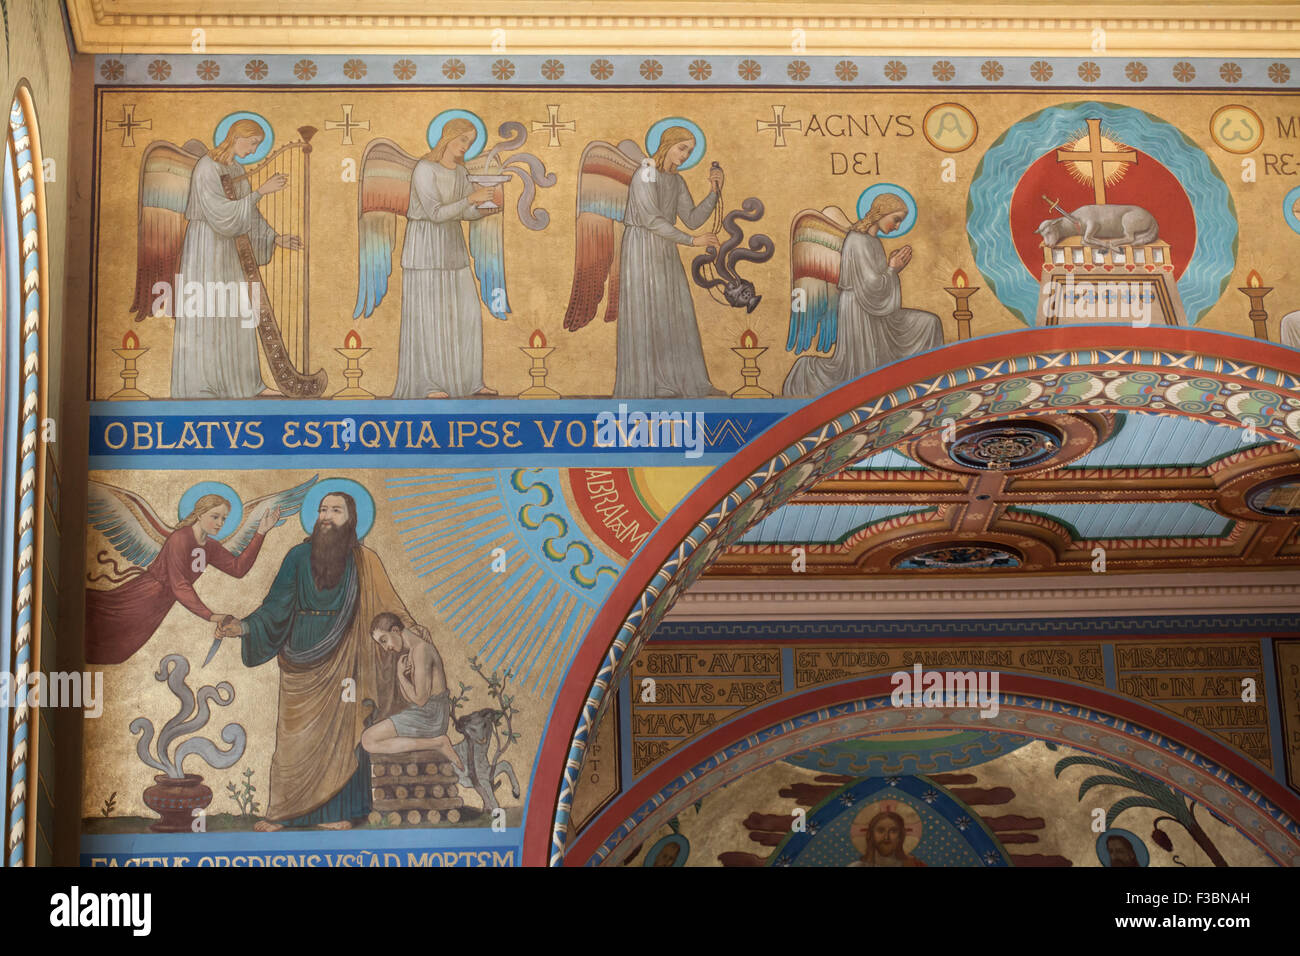 Adoration of the Lamb of God and the Sacrifice of Abraham depicted in the murals designed by Benedictine monk Pantaleon - Stock Image